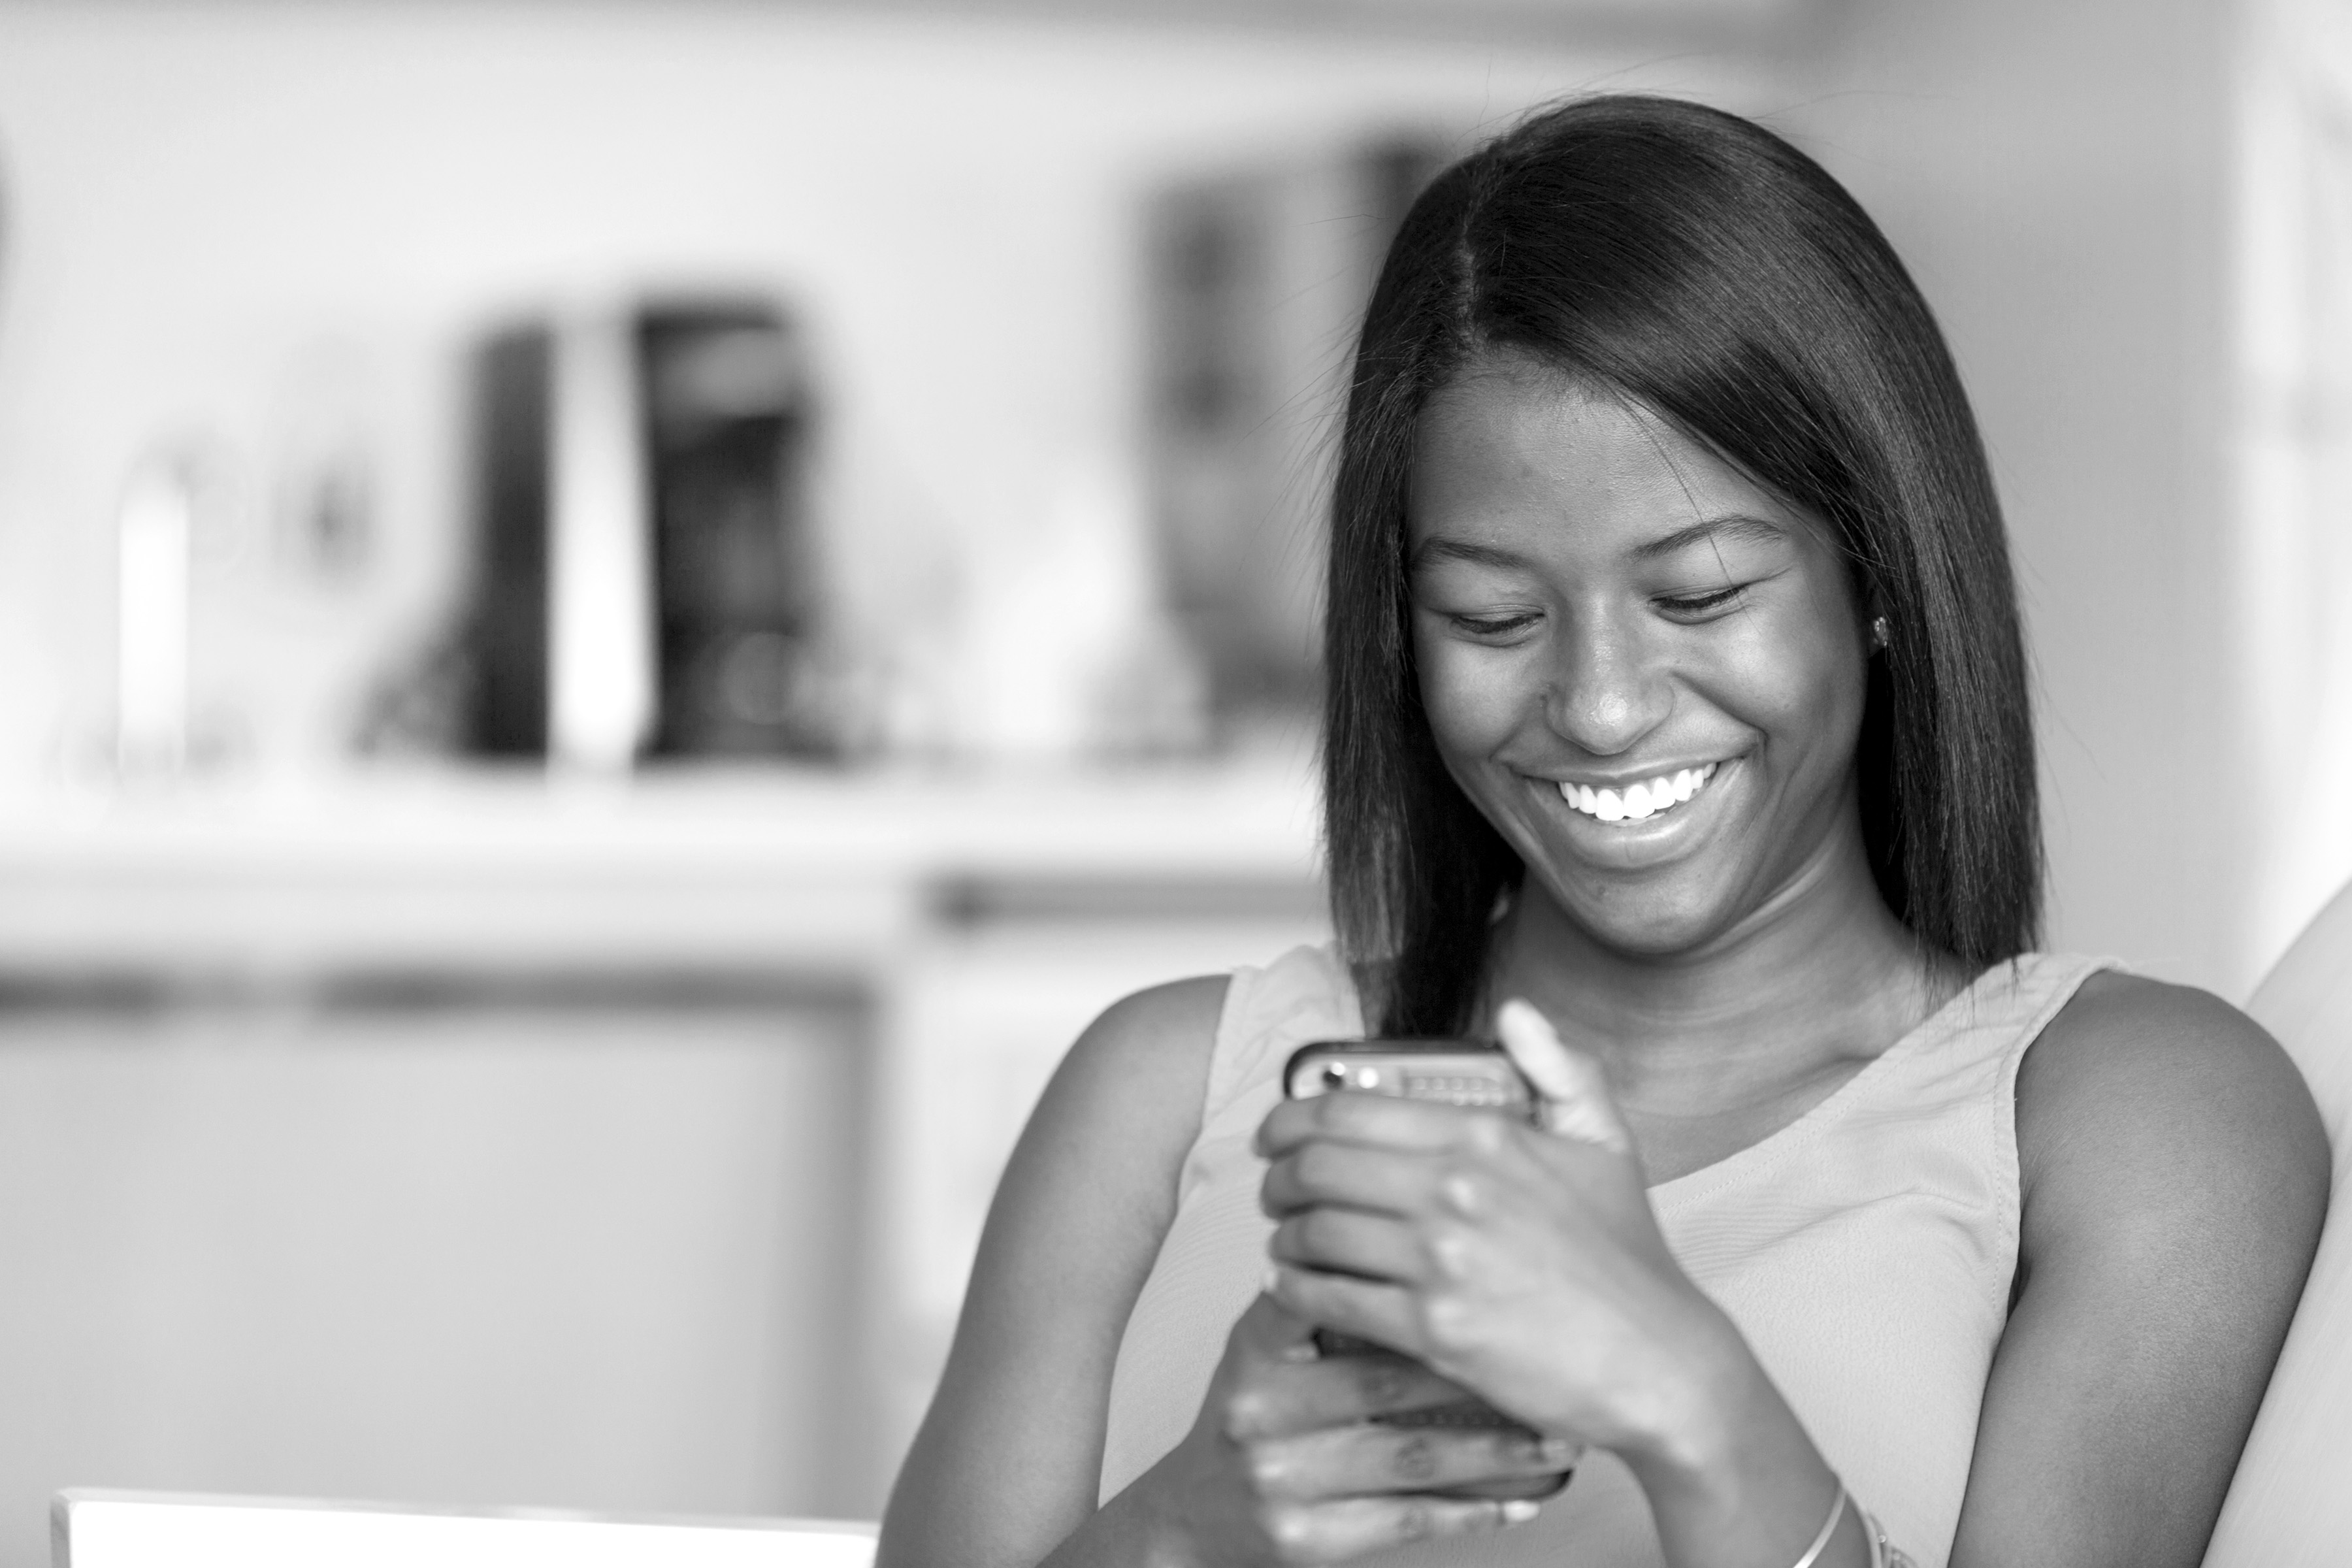 Teenage Girl Smiling and Looking at Her Cell Phone